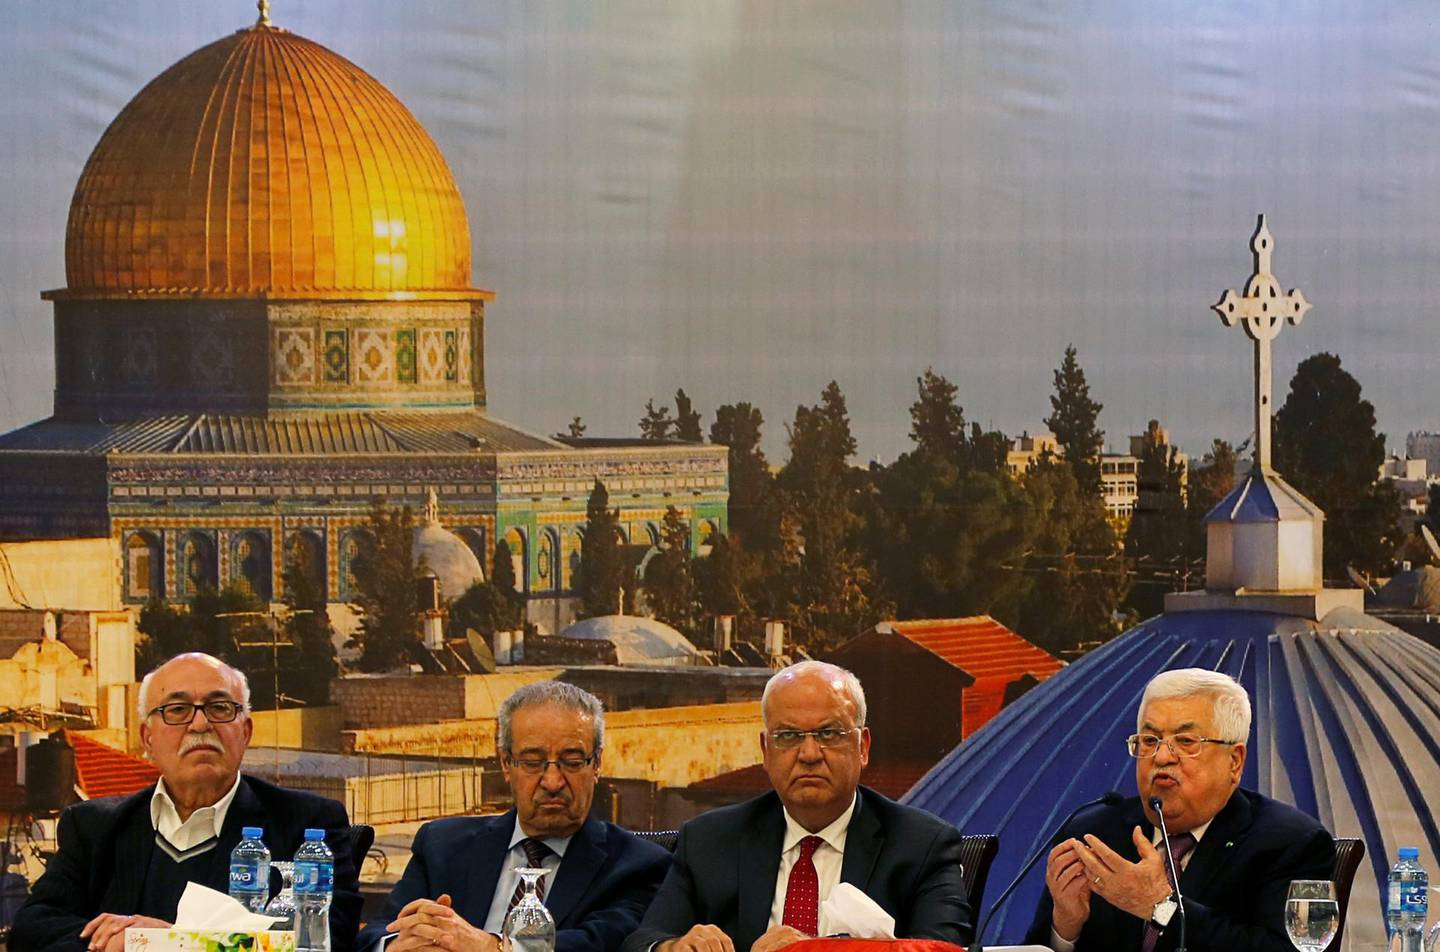 Palestinian President Mahmoud Abbas gestures as he delivers a speech following the announcement by the U.S. President Donald Trump of the Mideast peace plan, in Ramallah in the Israeli-occupied West Bank January 28, 2020. REUTERS/Raneen Sawafta